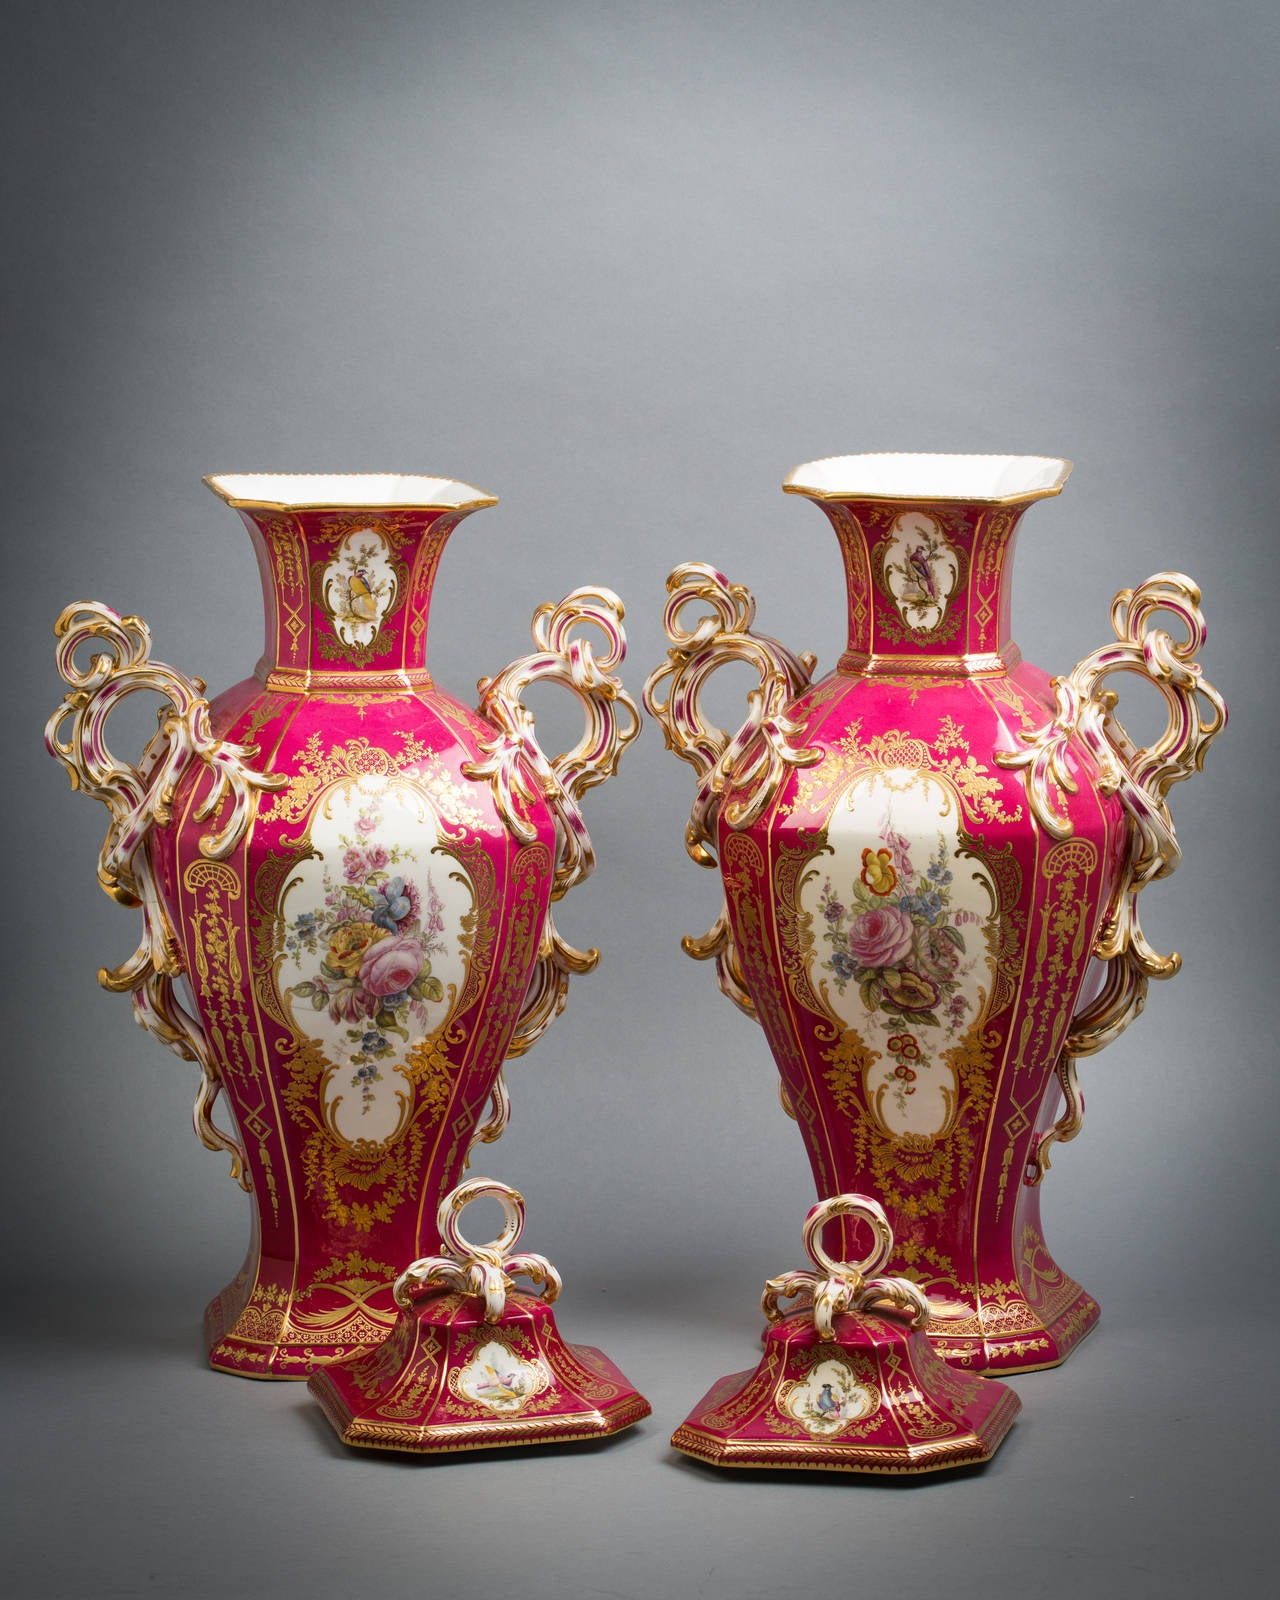 Pair of English Porcelain Covered Urns, Minton, circa 1840 In Good Condition For Sale In New York, NY